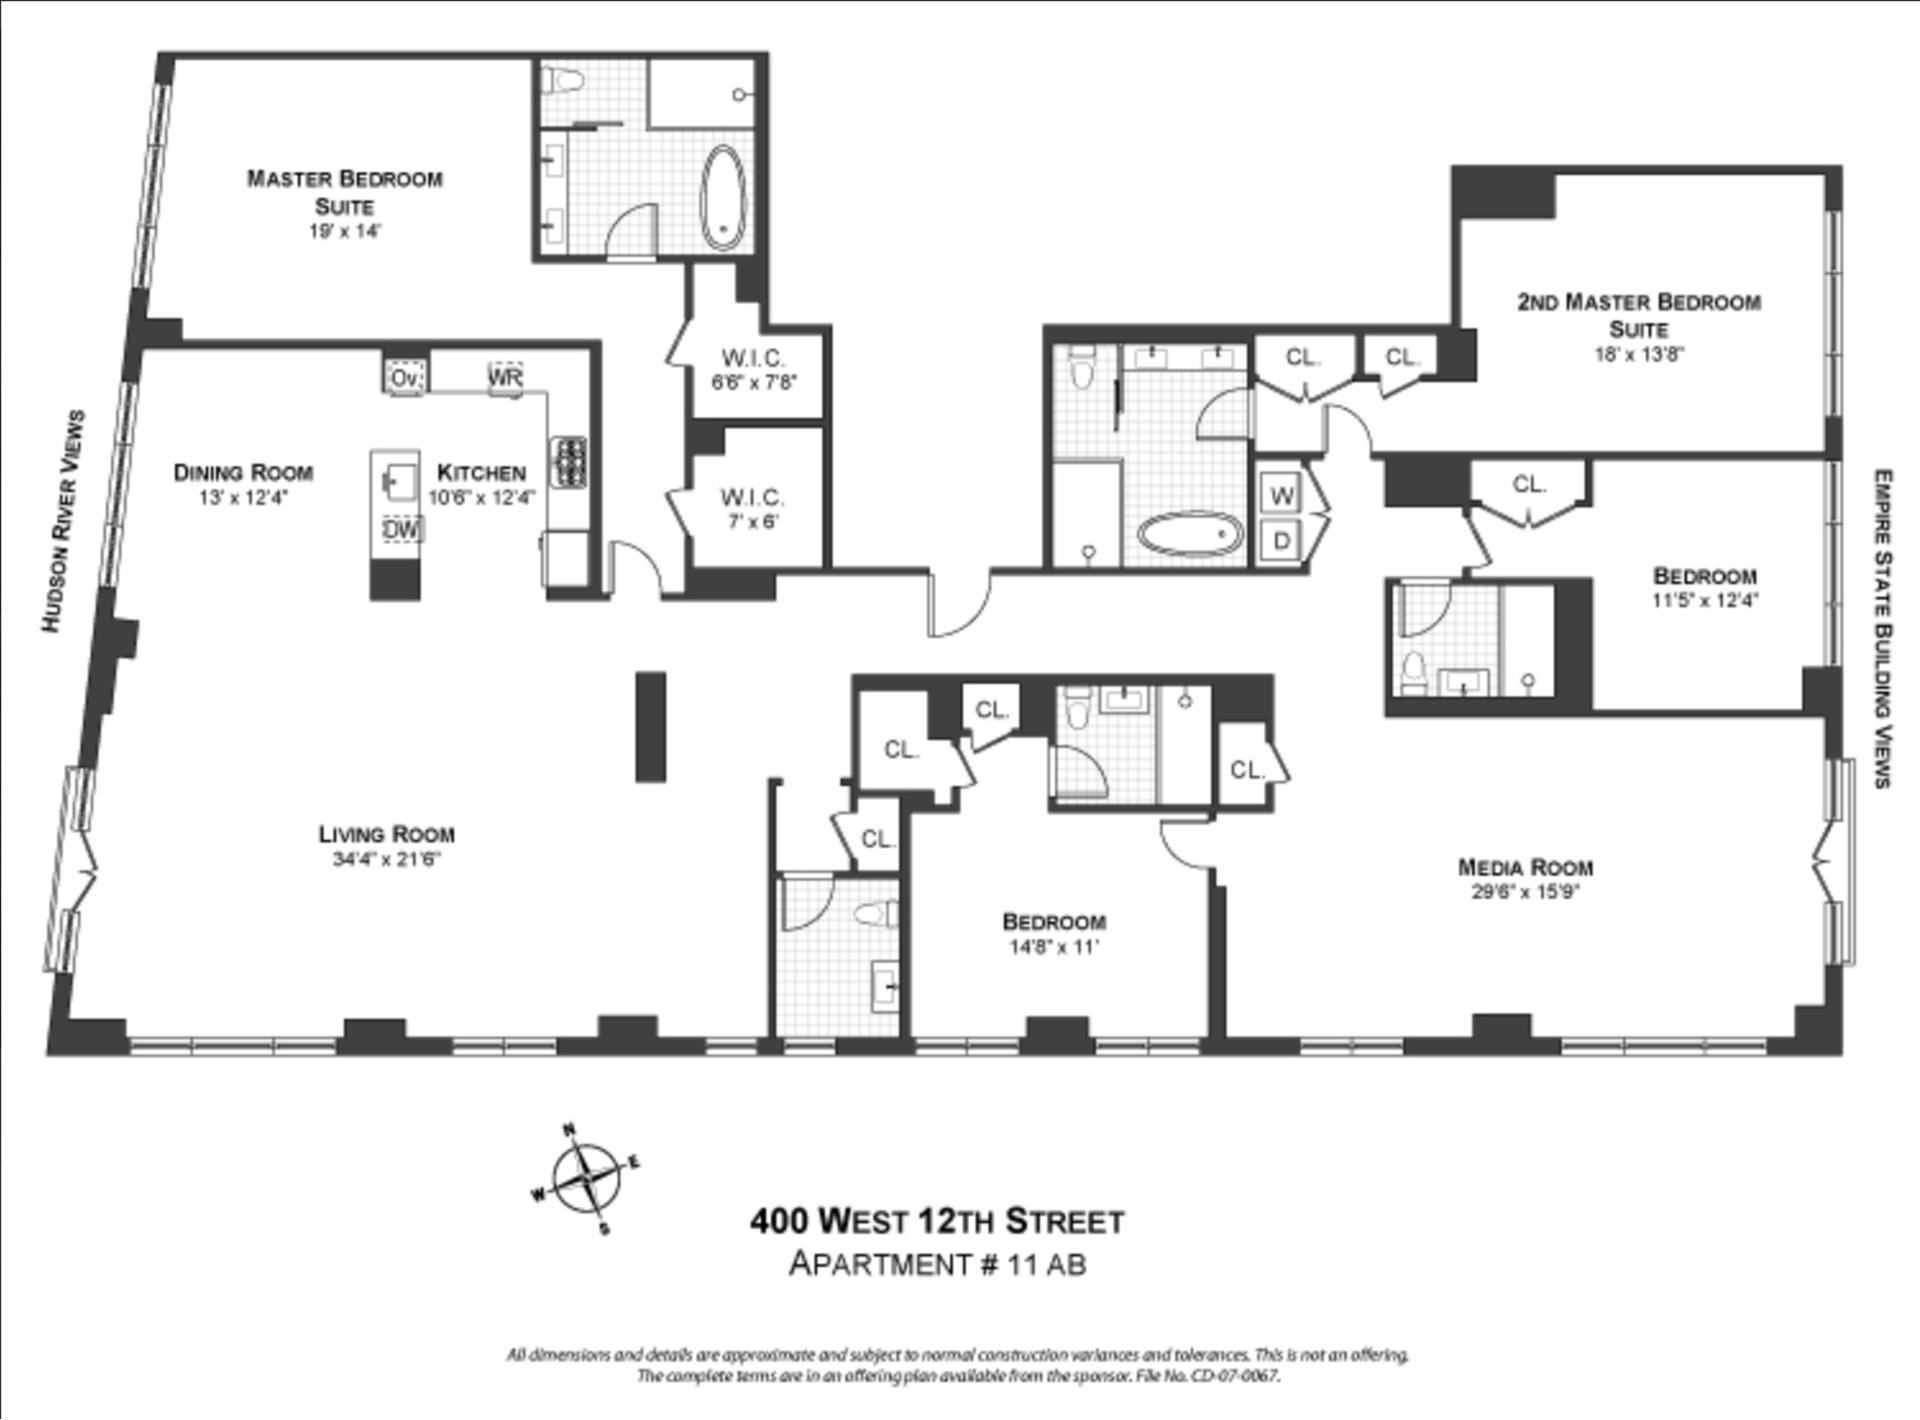 Floor plan of Superior Ink Condominiums, 400 West 12th St, 11ABCD - West Village - Meatpacking District, New York